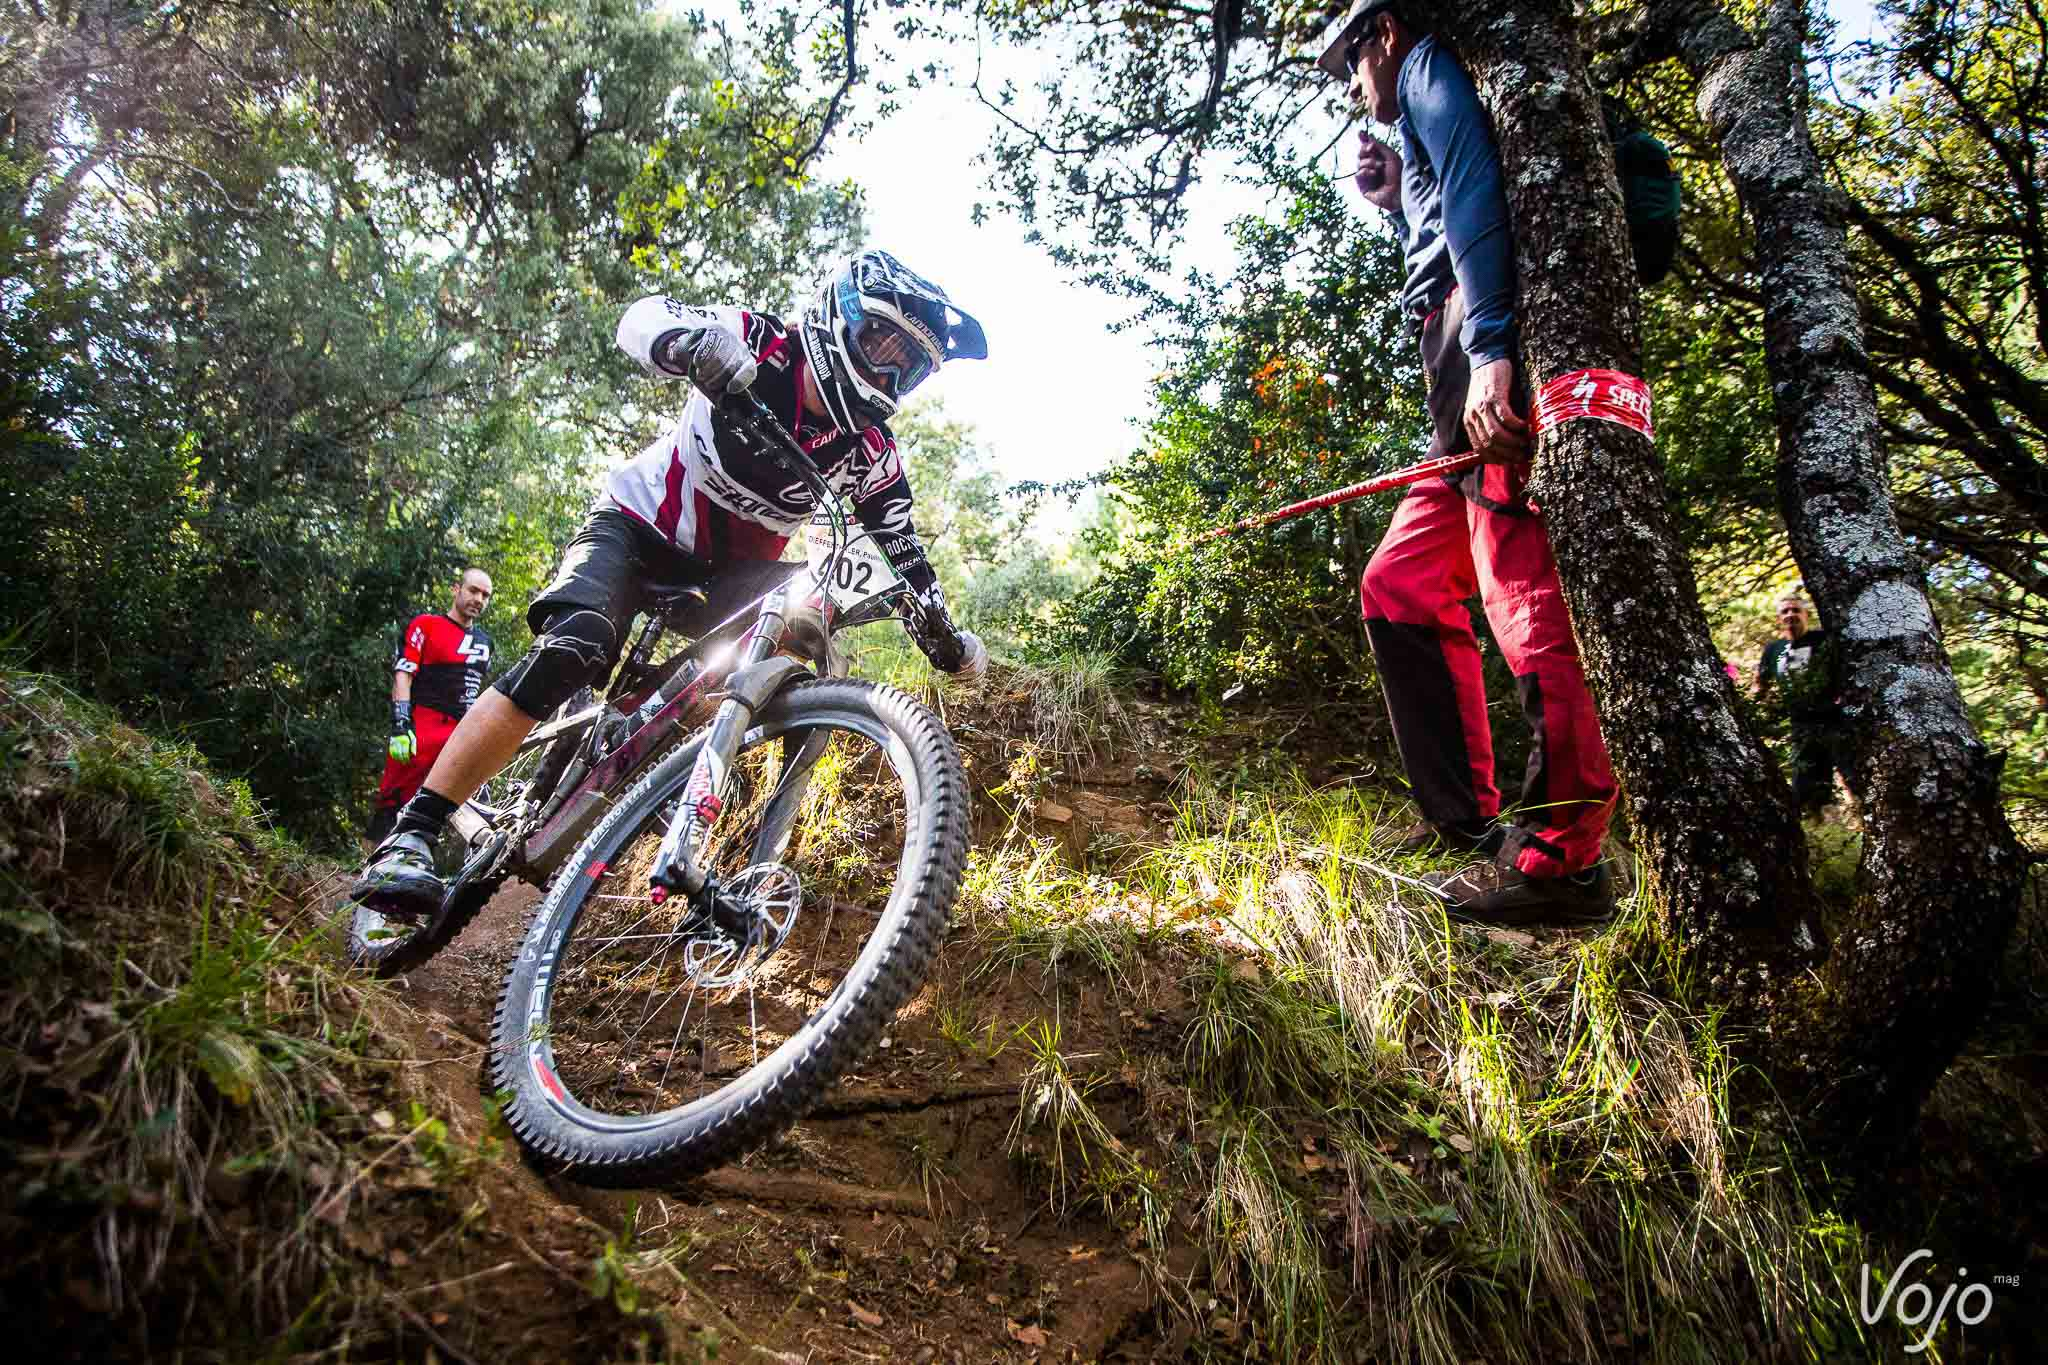 Enduro_World_Series_7_Spain_Ainsa_Zona_Zero_2015_Copyright_VojoMag-5